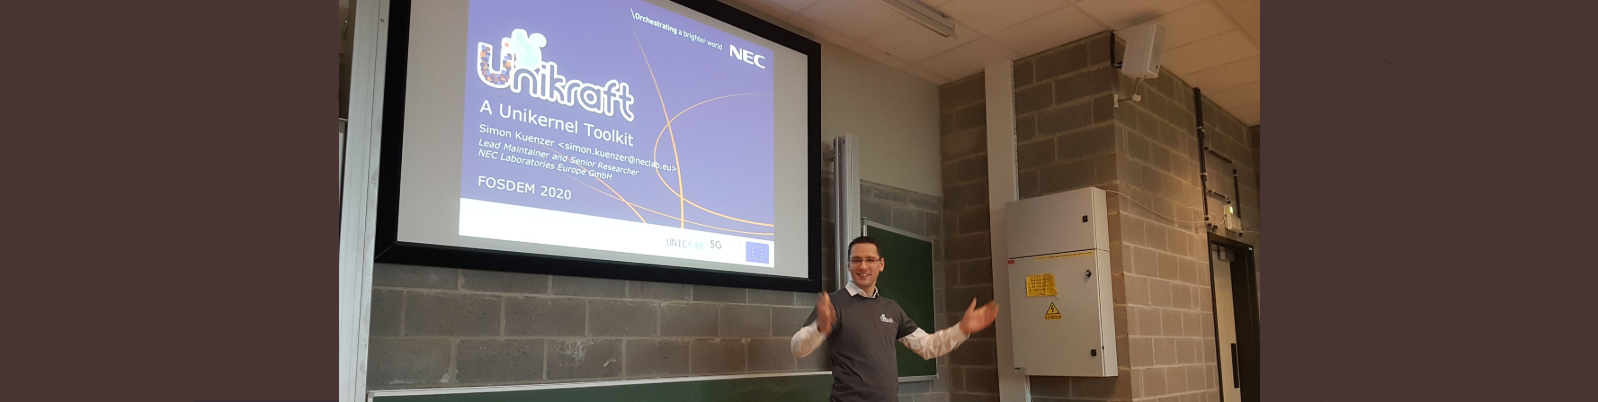 IBM and NEC's presentations at FOSDEM '20, available